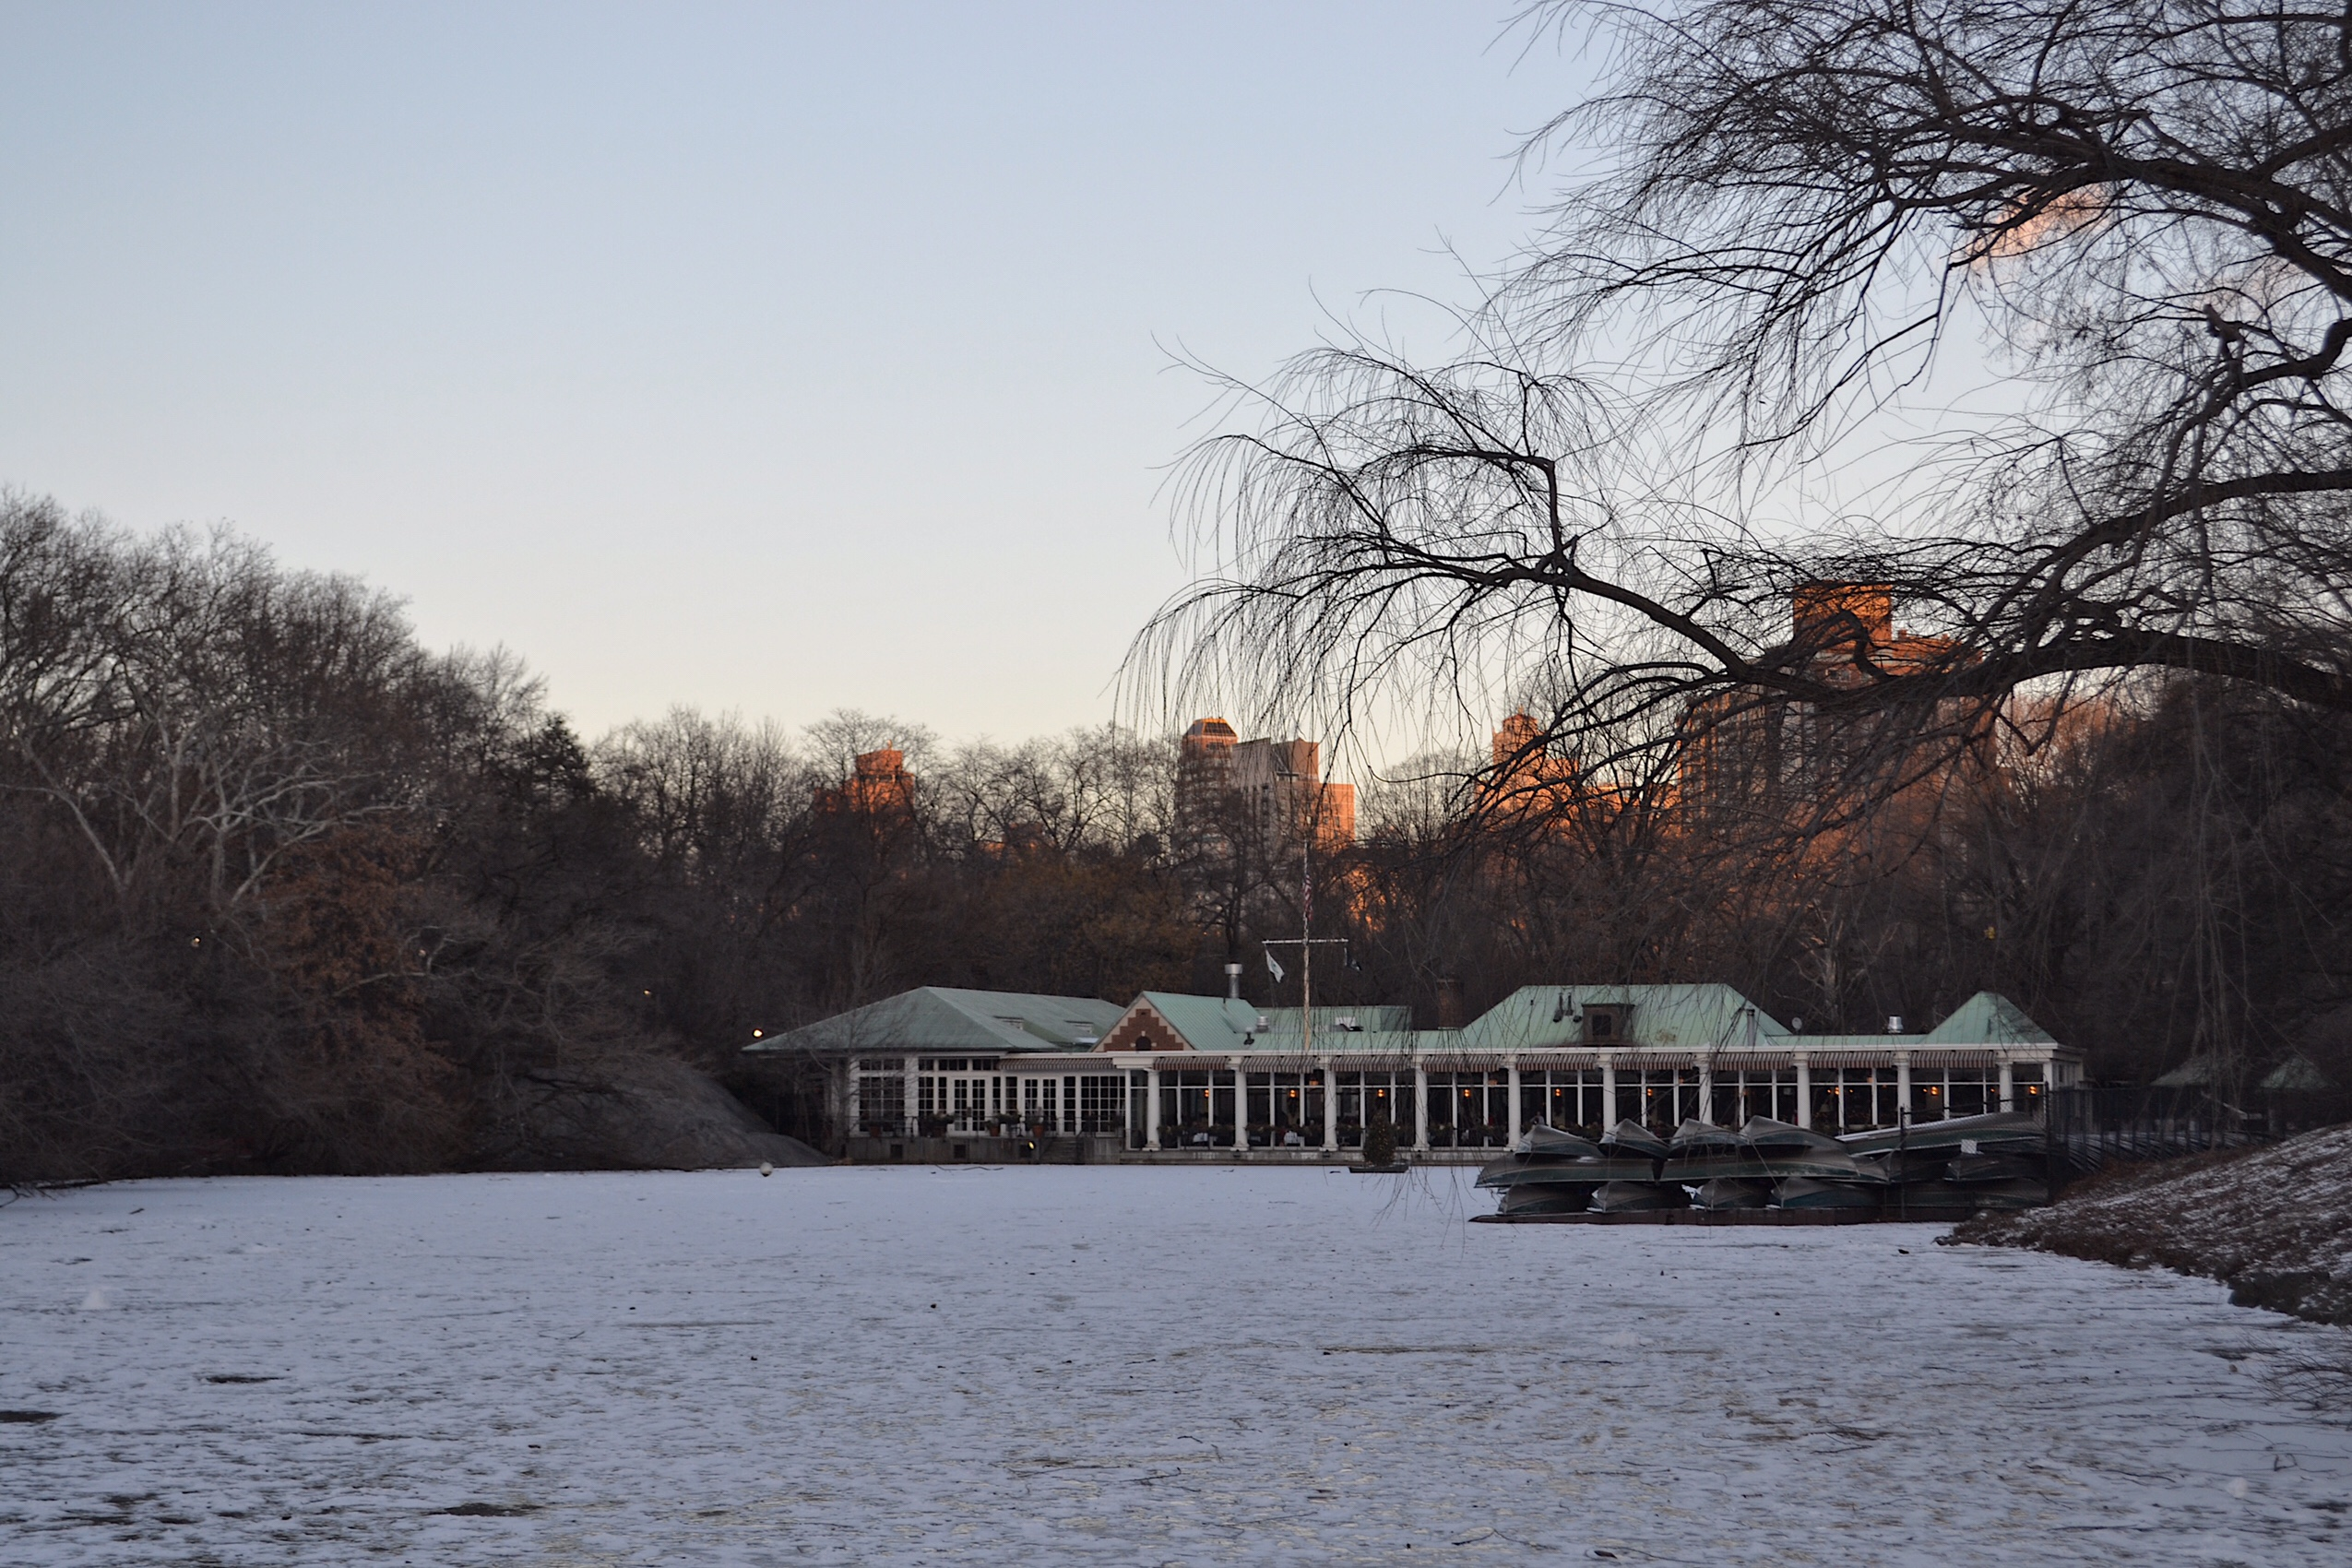 image of the boat house in Central Park in New York